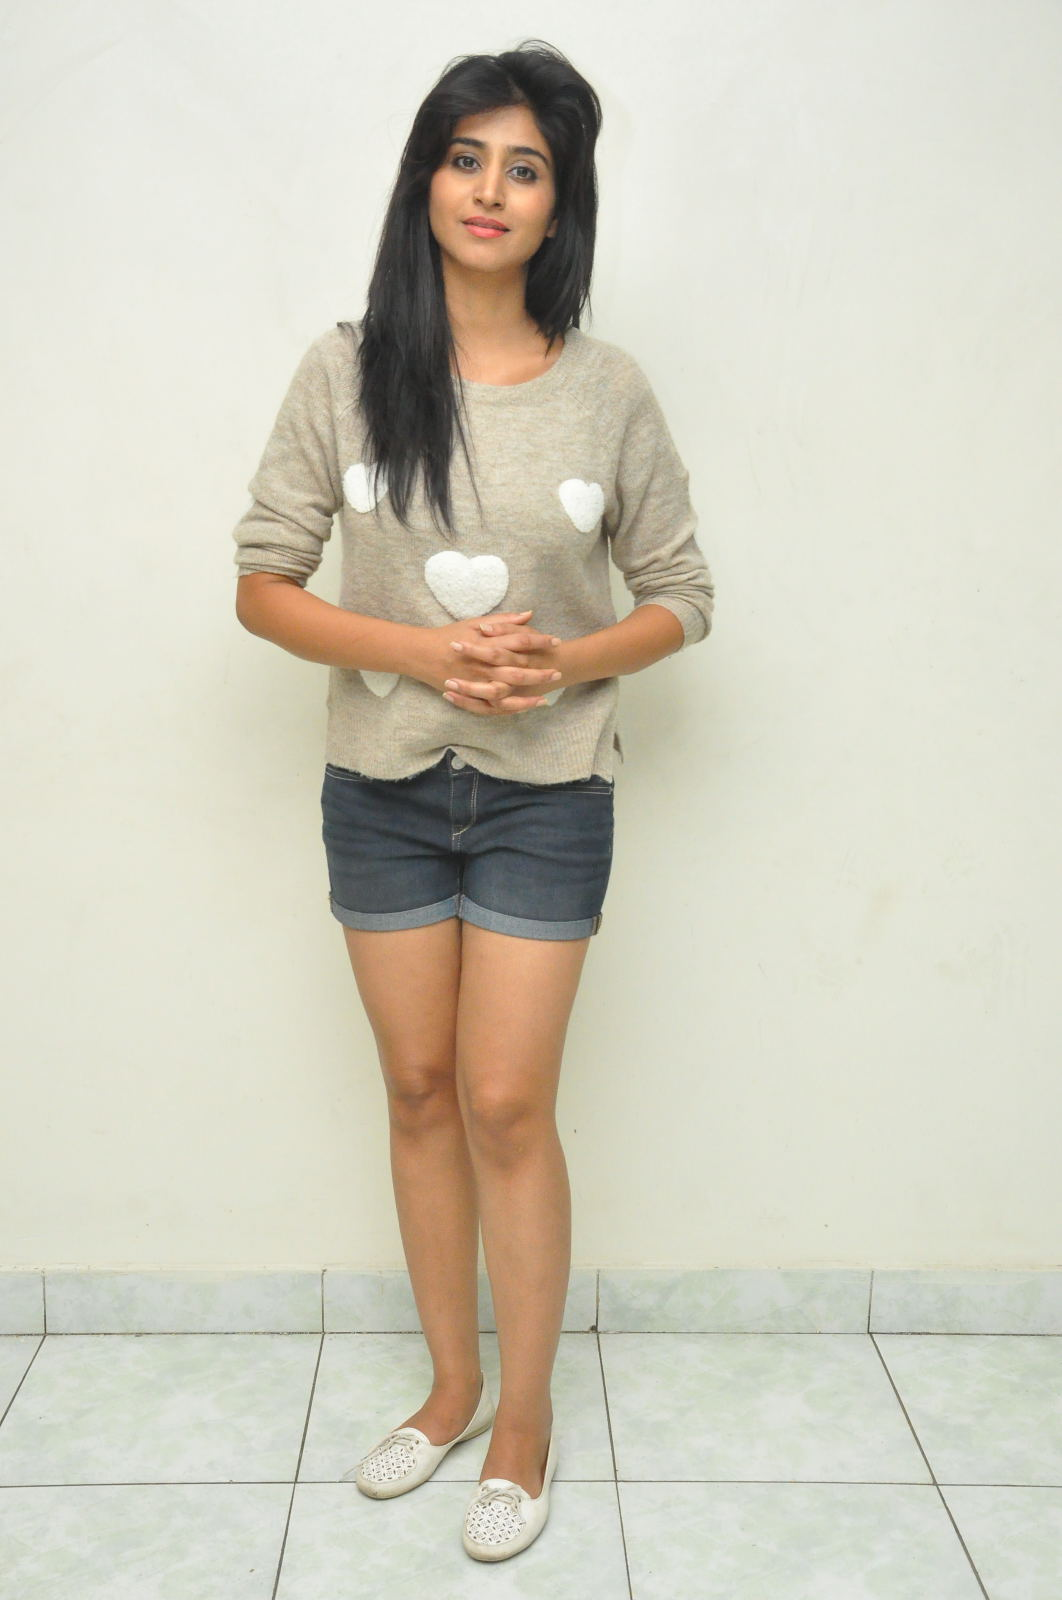 Shamili new cute photos gallery-HQ-Photo-11